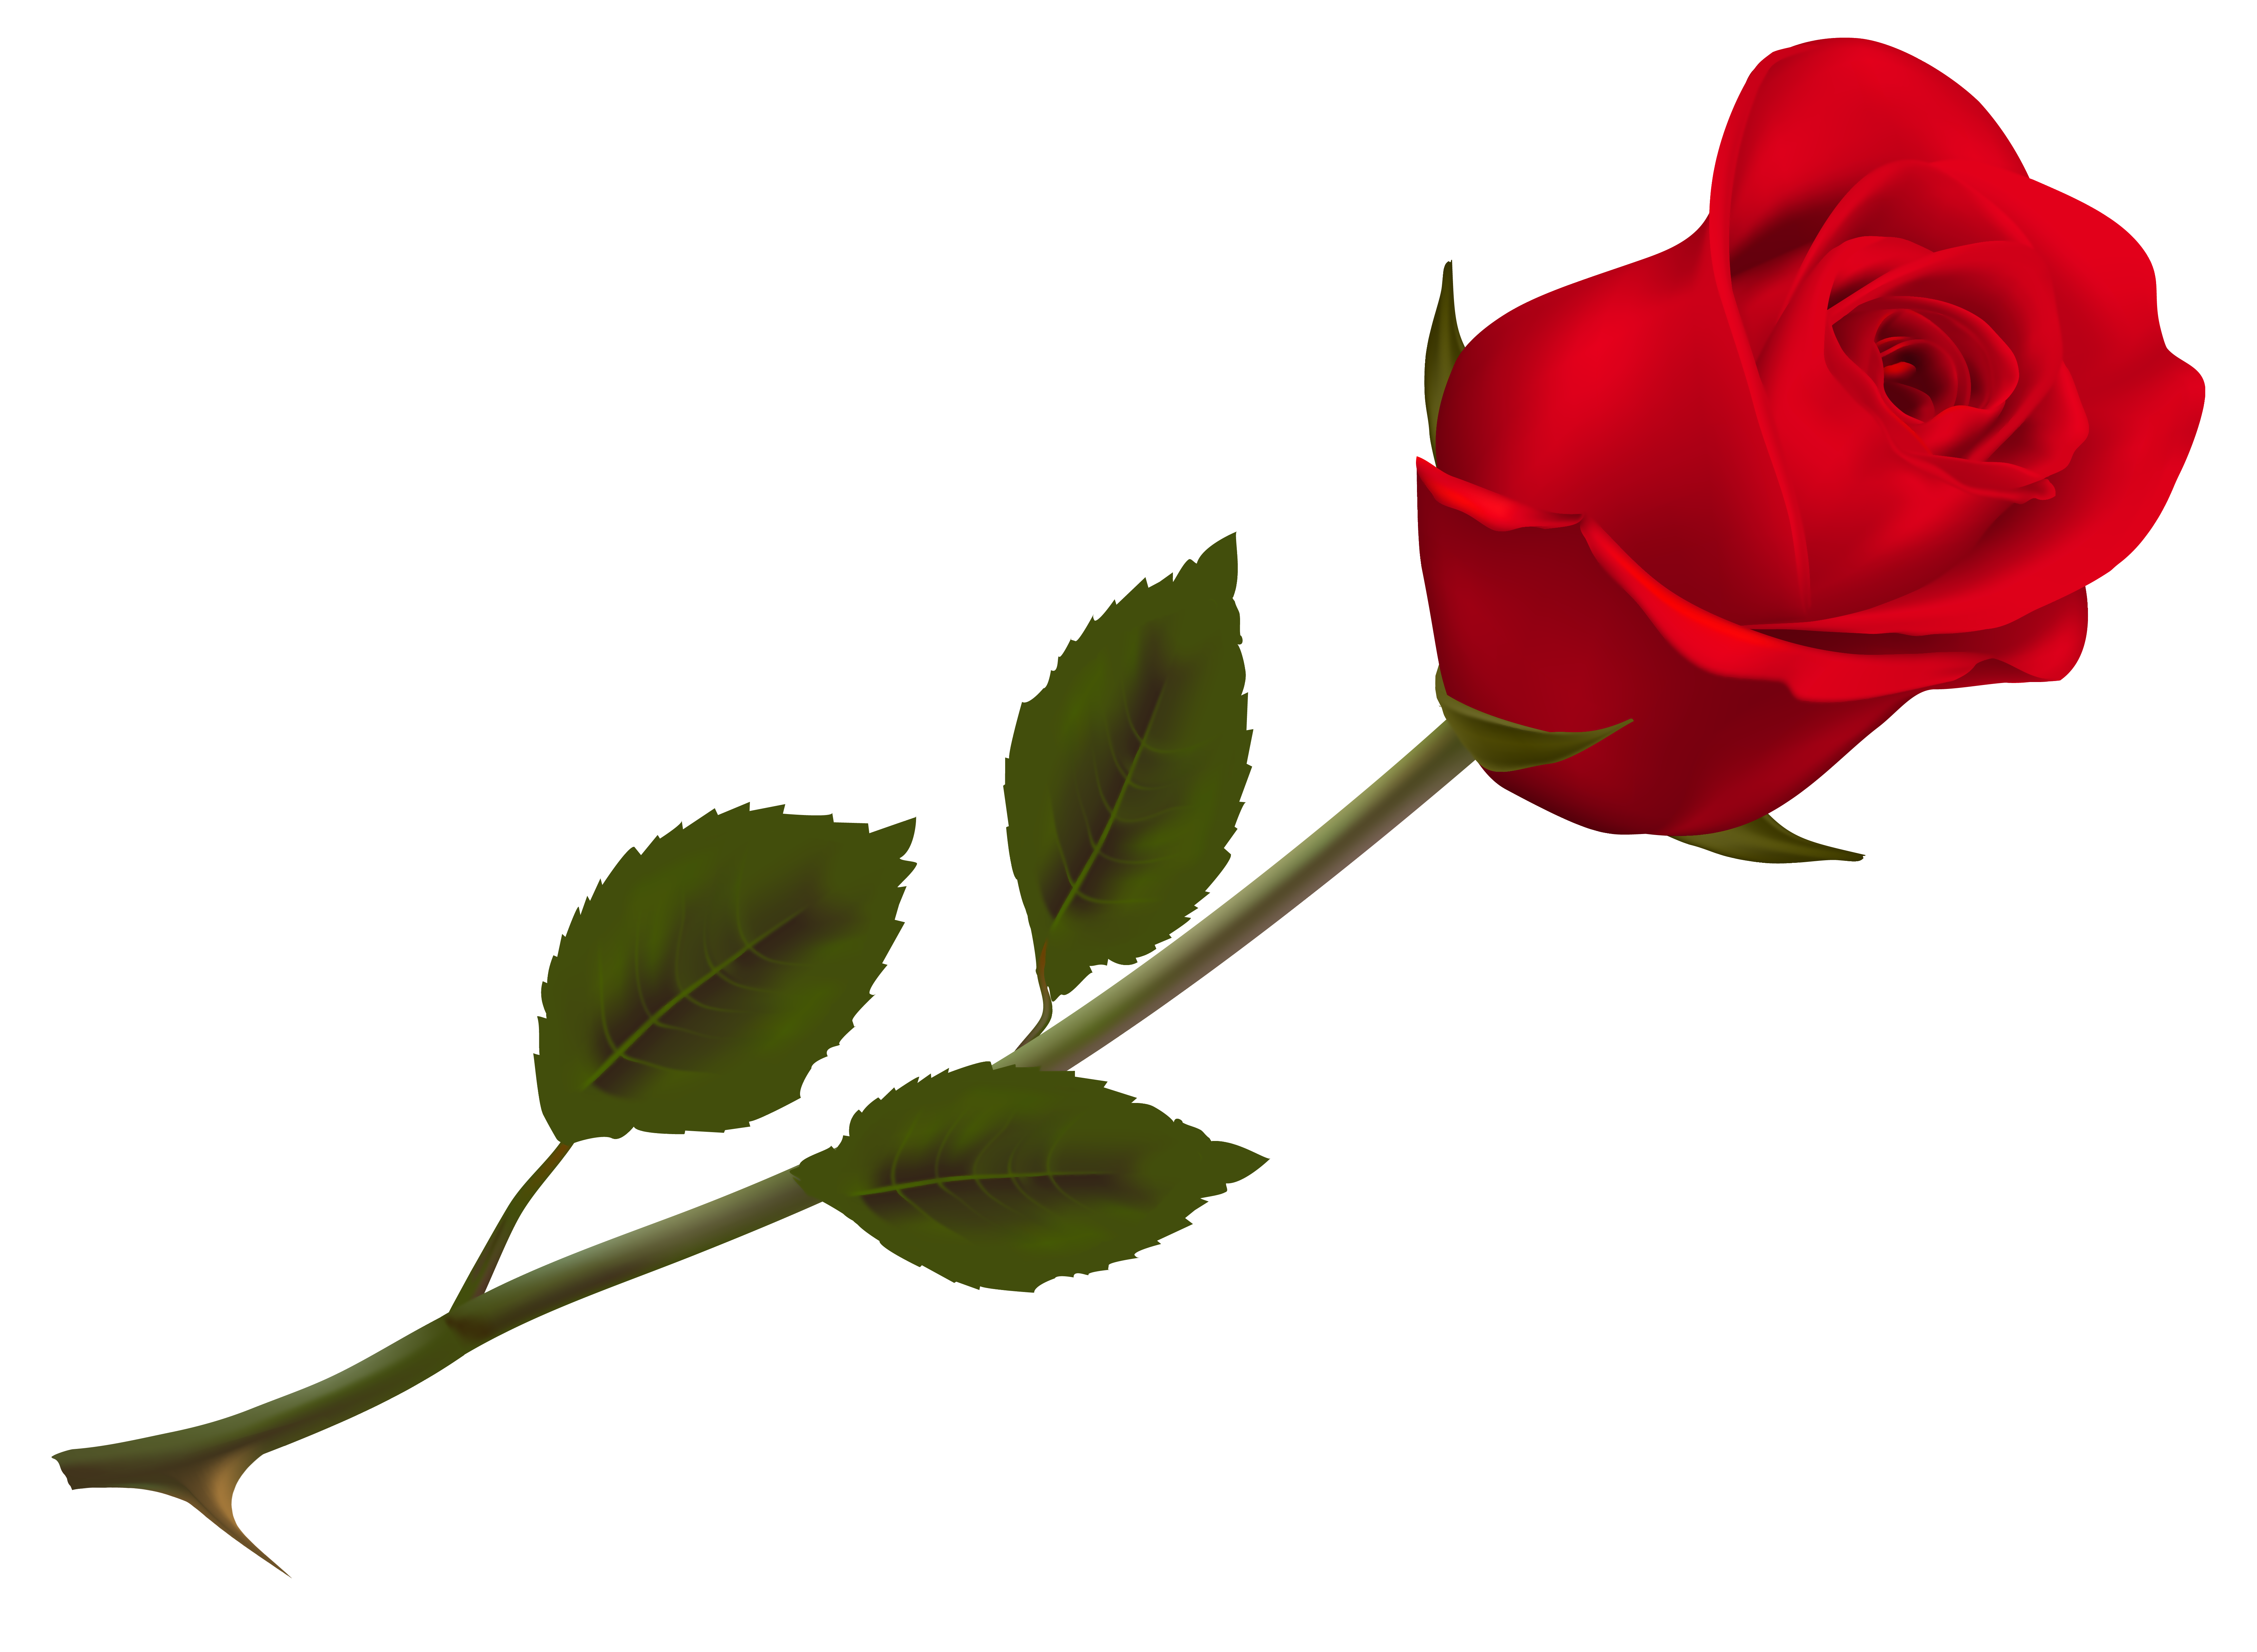 Transparent png images roses. Beautiful red rose picture